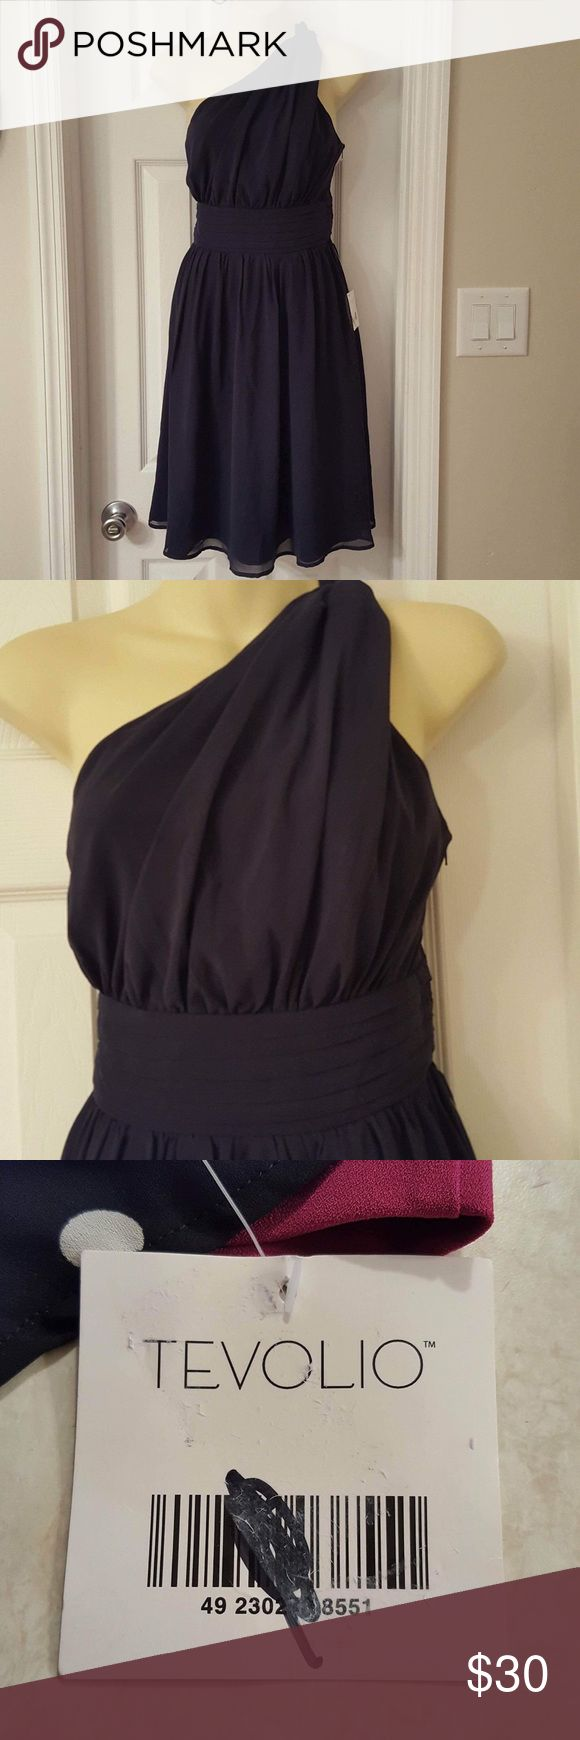 Tevolio one shoulder chiffon ruched bodice dress Beautiful fully lined side zip bridesmaid, formal, prom cocktail dress NWT Tevolio Dresses